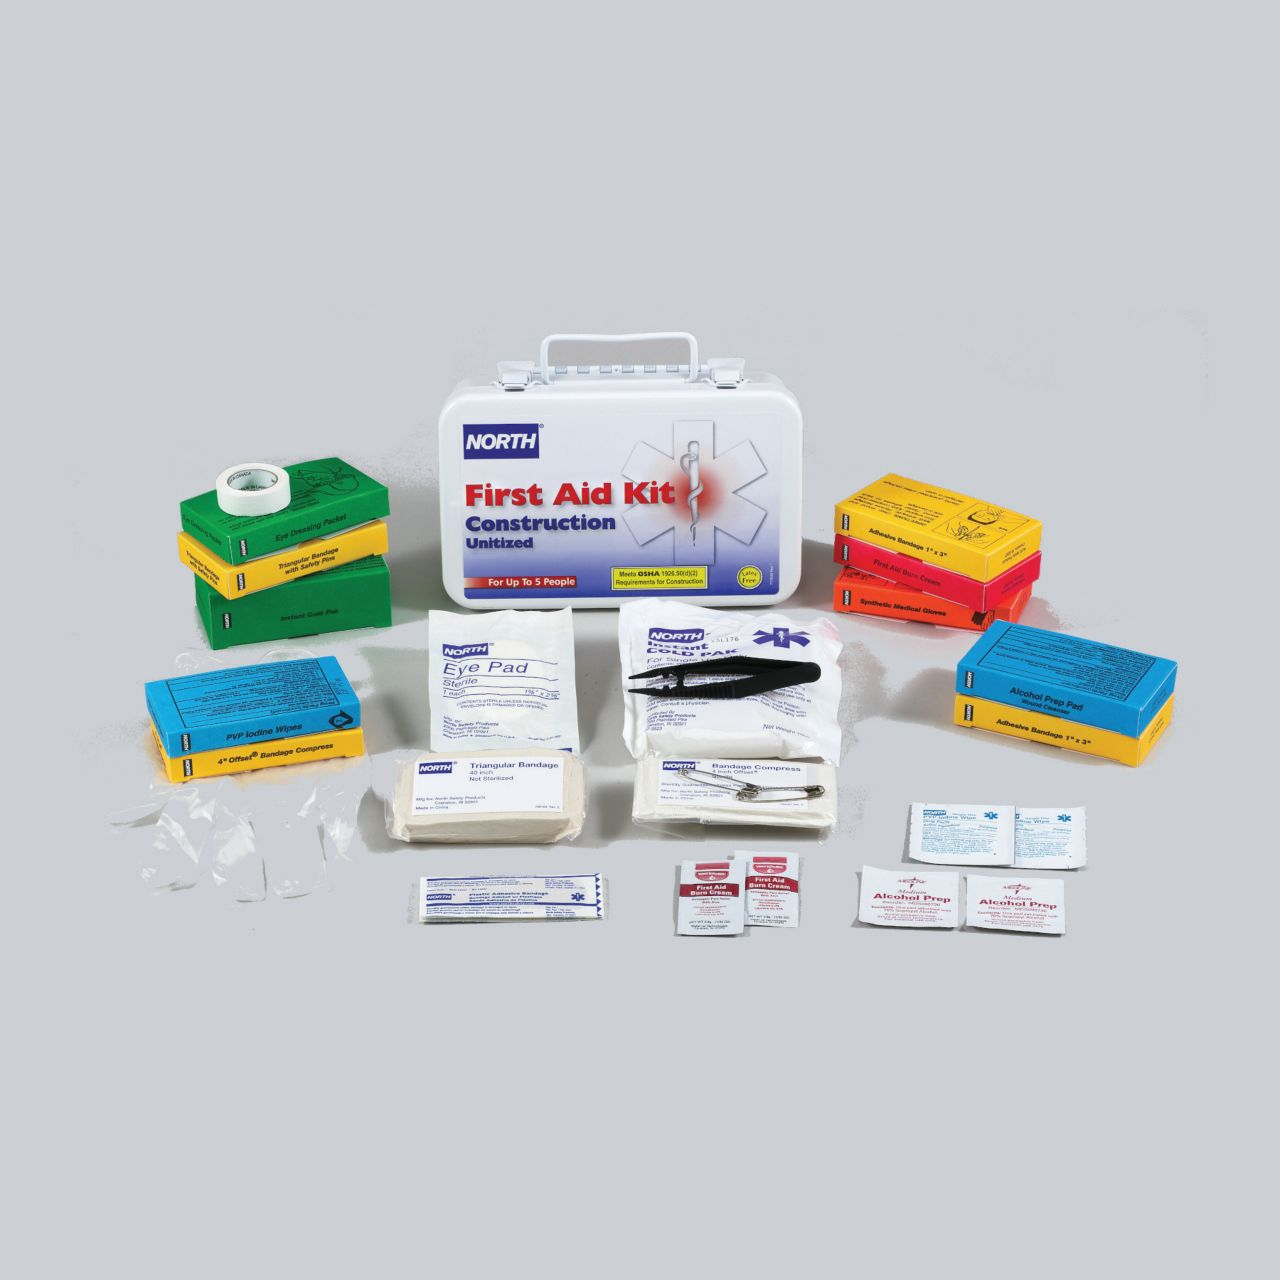 HS_019729-0016l_-_construction_unitized_first_aid_kit_north_019729_kit